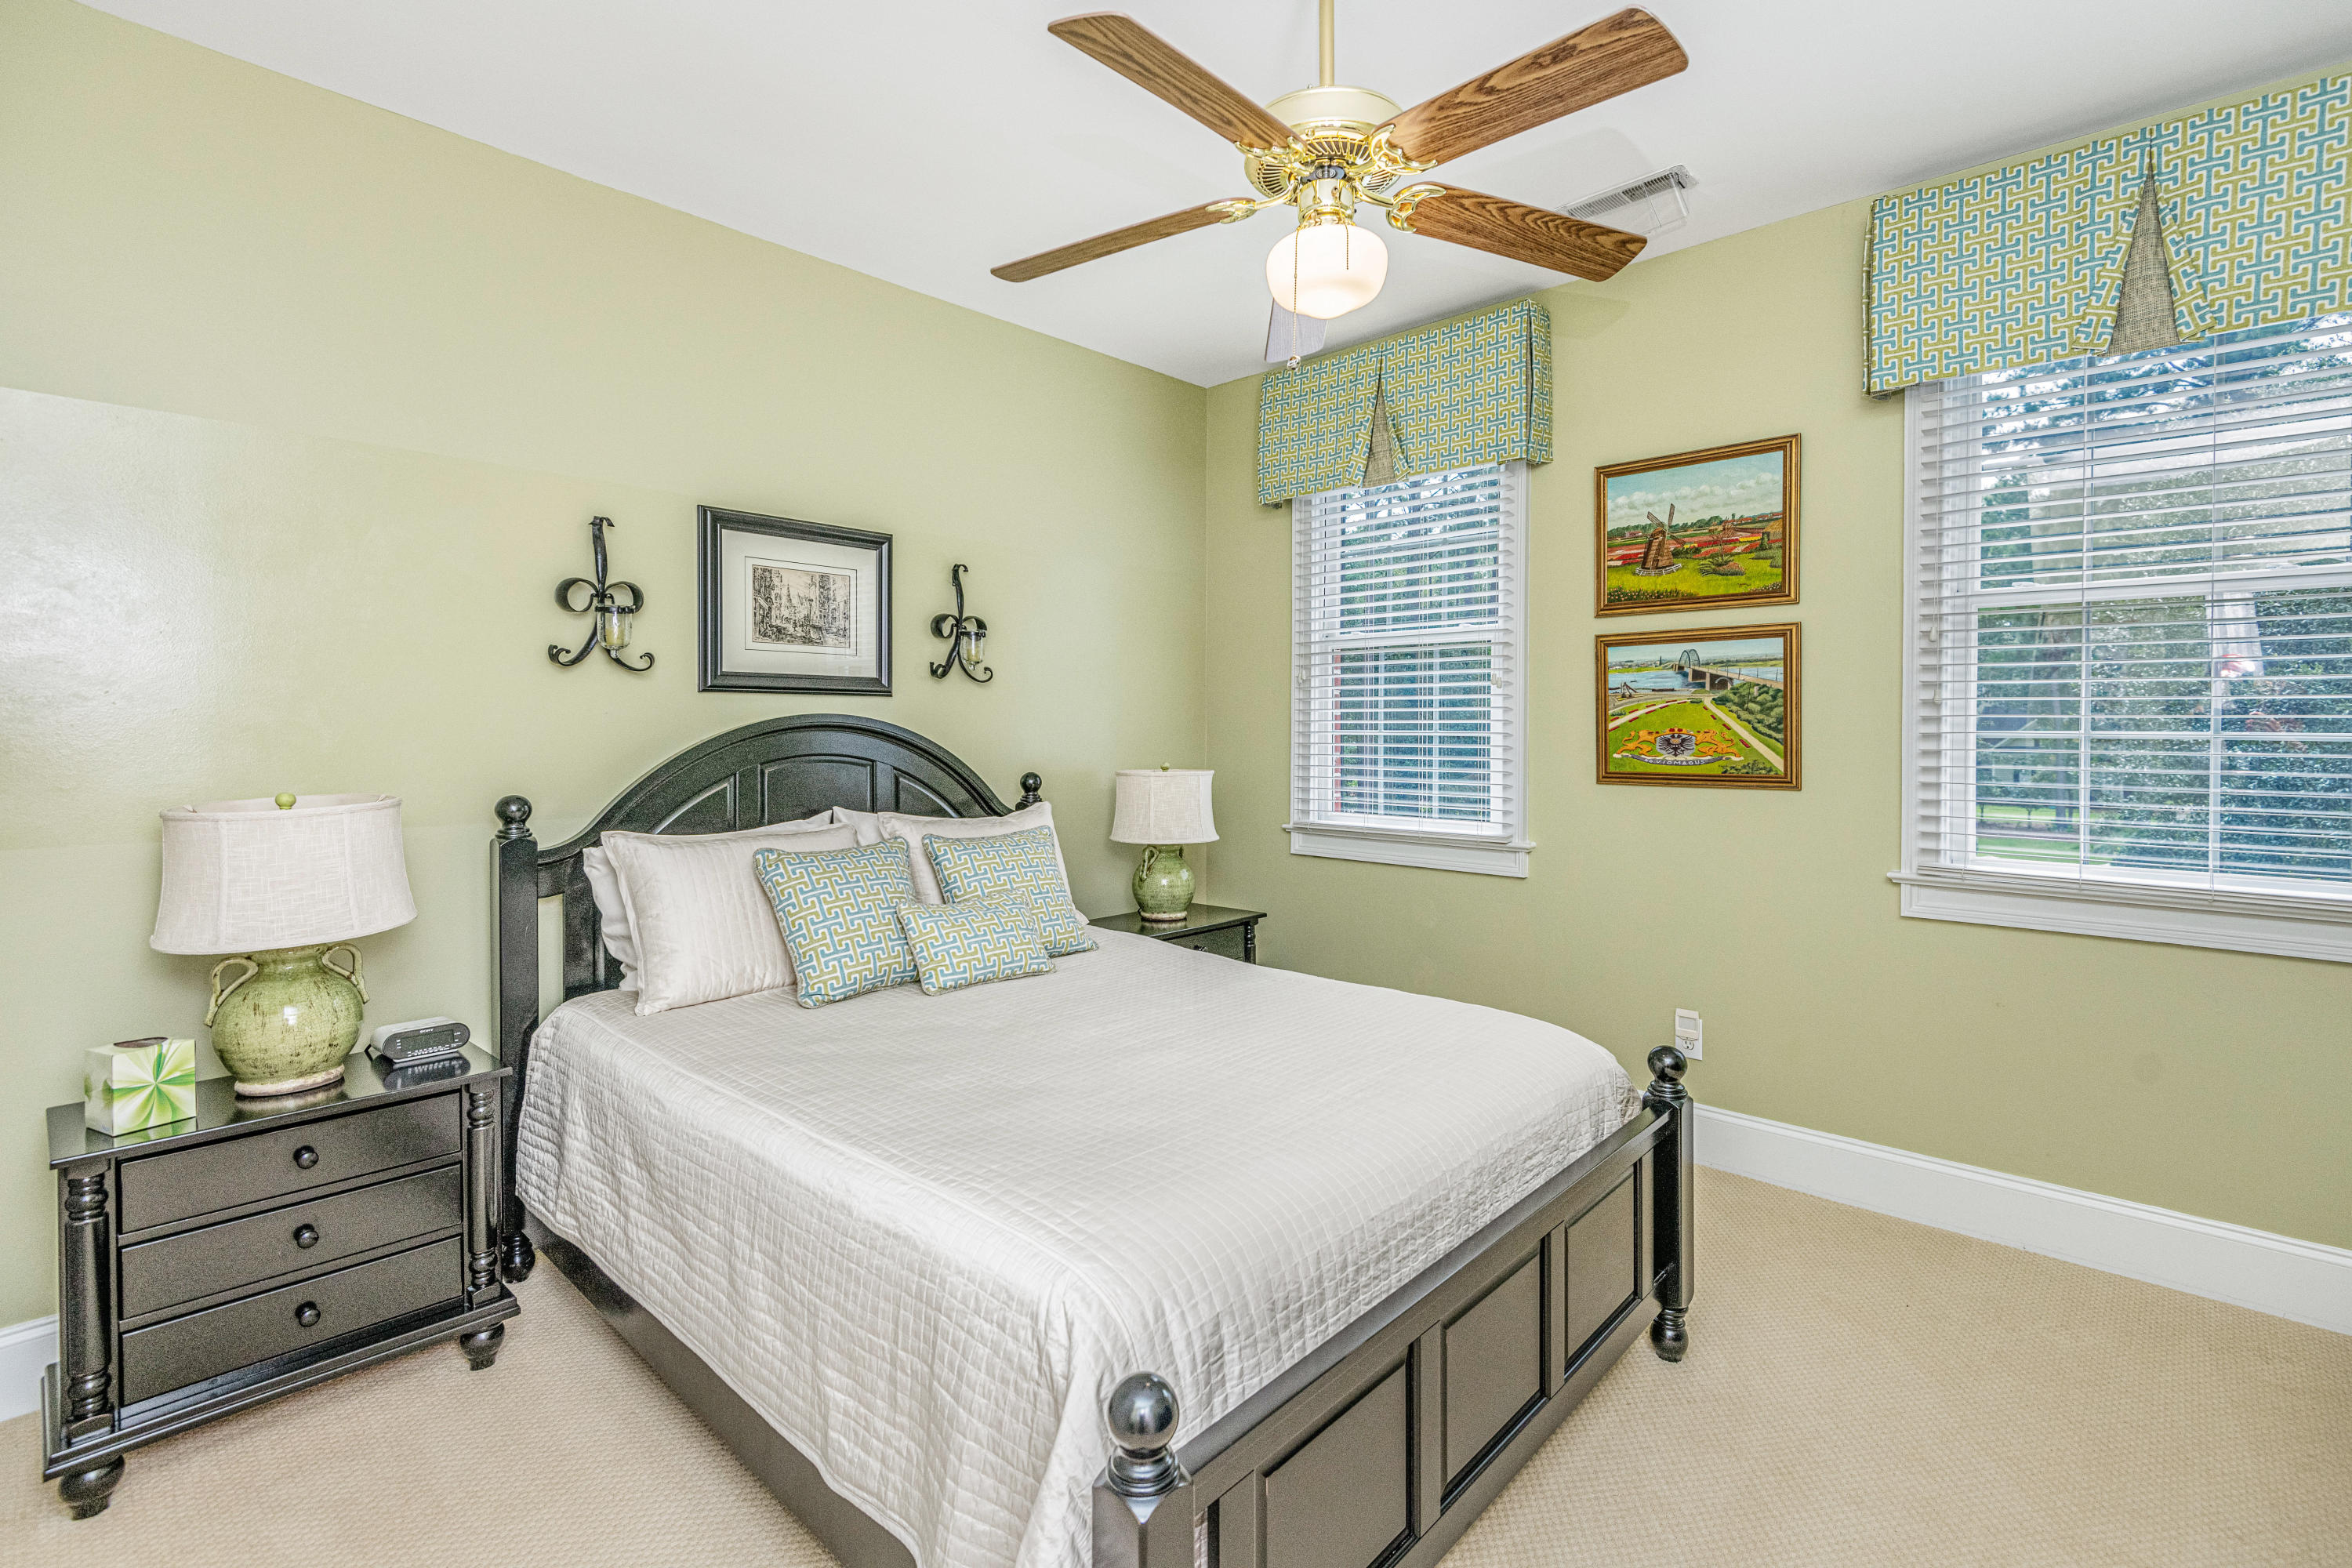 Dunes West Homes For Sale - 1837 Shell Ring, Mount Pleasant, SC - 39